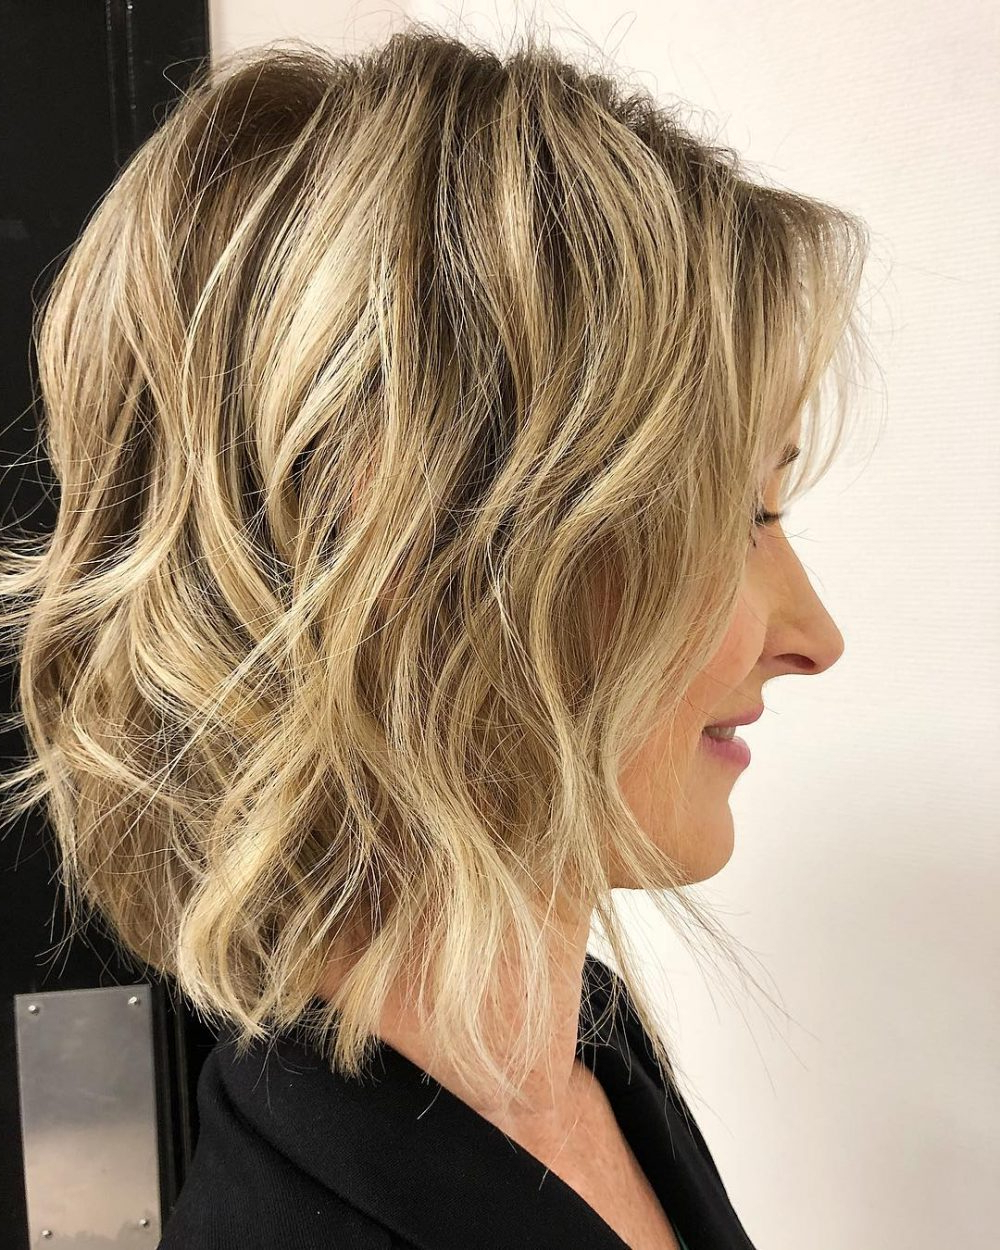 43 Perfect Short Hairstyles For Fine Hair In 2018 Inside Short Voluminous Feathered Hairstyles (View 9 of 20)